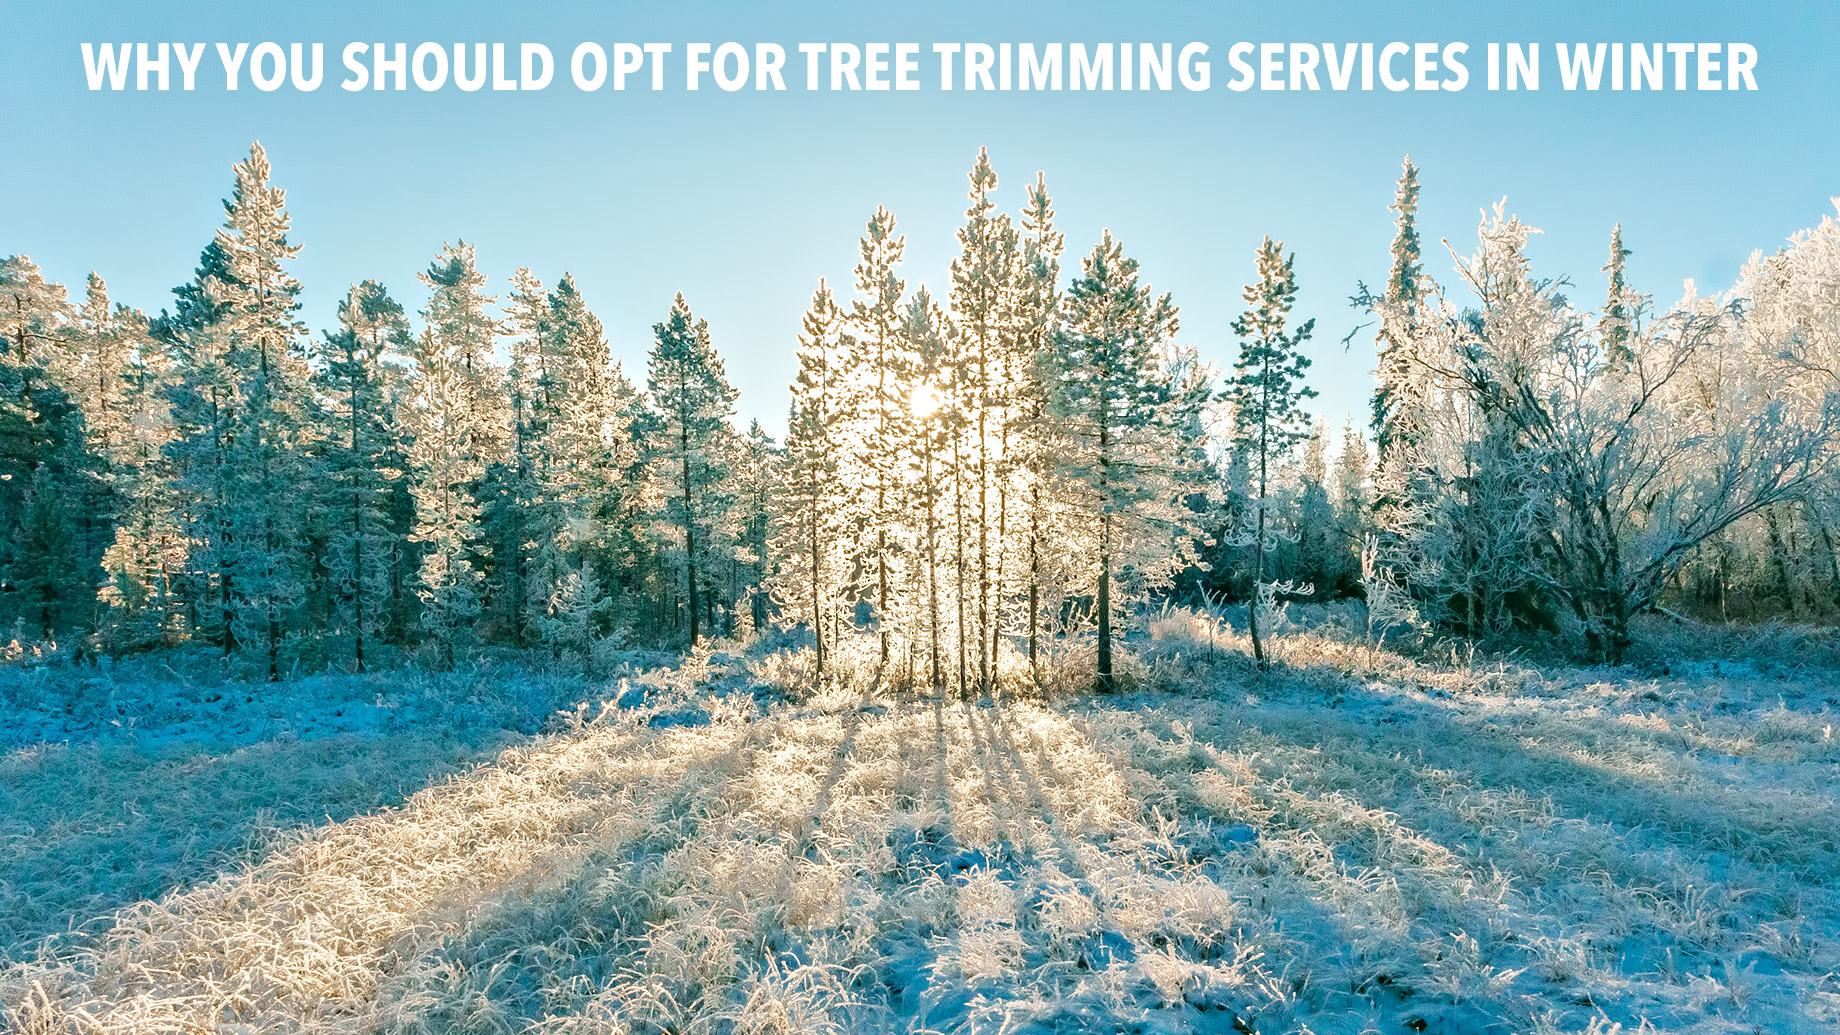 Why You Should Opt for Tree Trimming Services in Winter